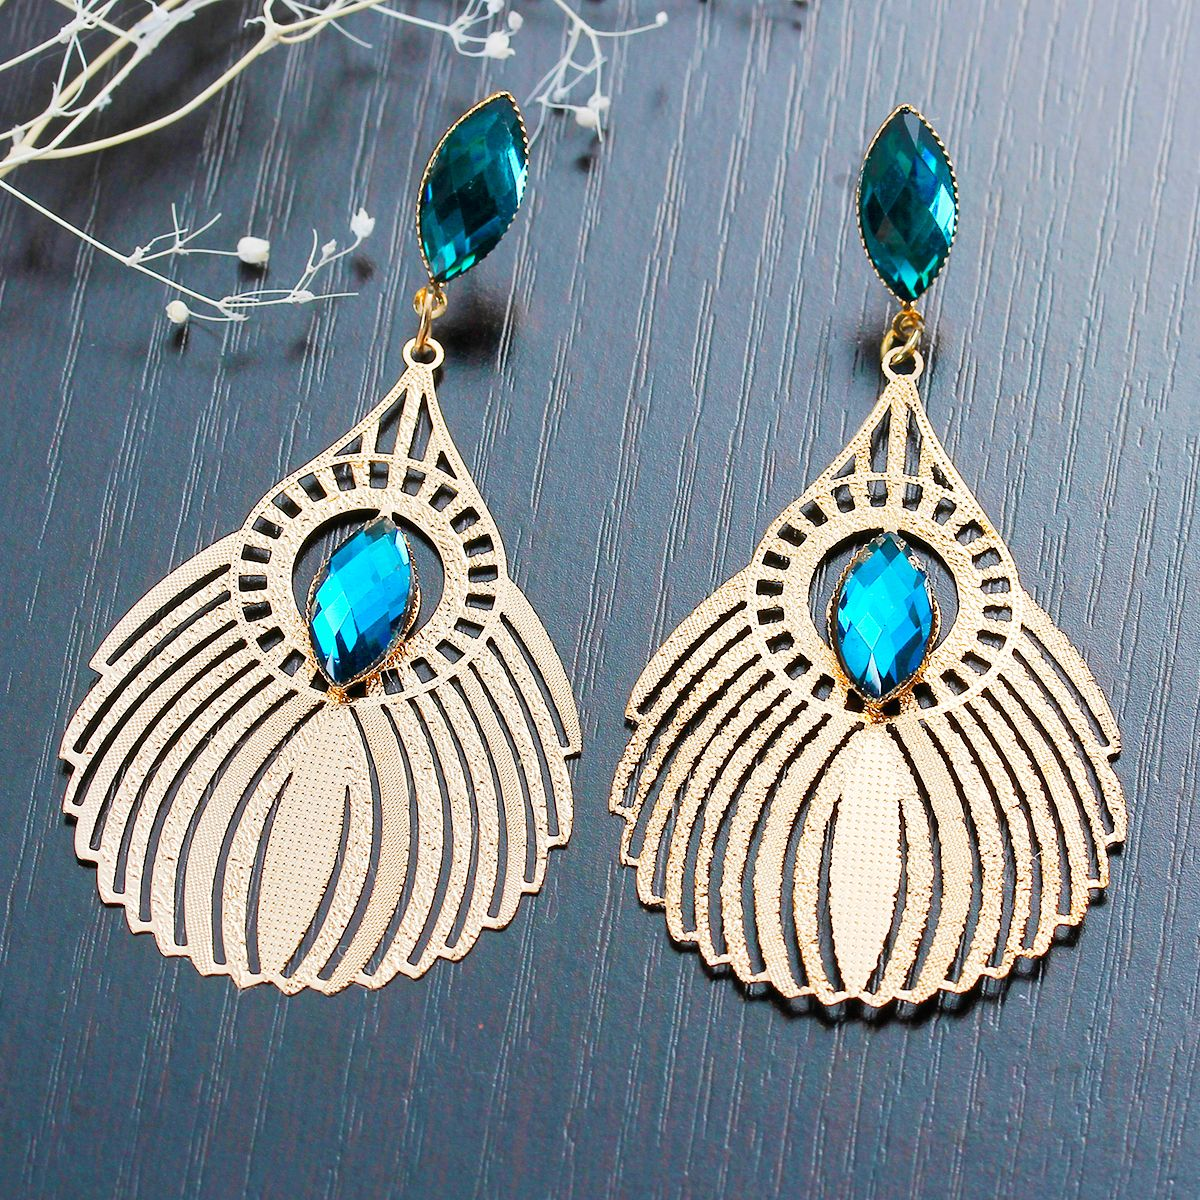 """New Fashion Copper Earrings Drop Rose Gold Malachite Green Rhinestone Hollow W/ Stoppers 78mm(3 1/8"""") x 38mm(1 4/8""""), 1 Pair"""